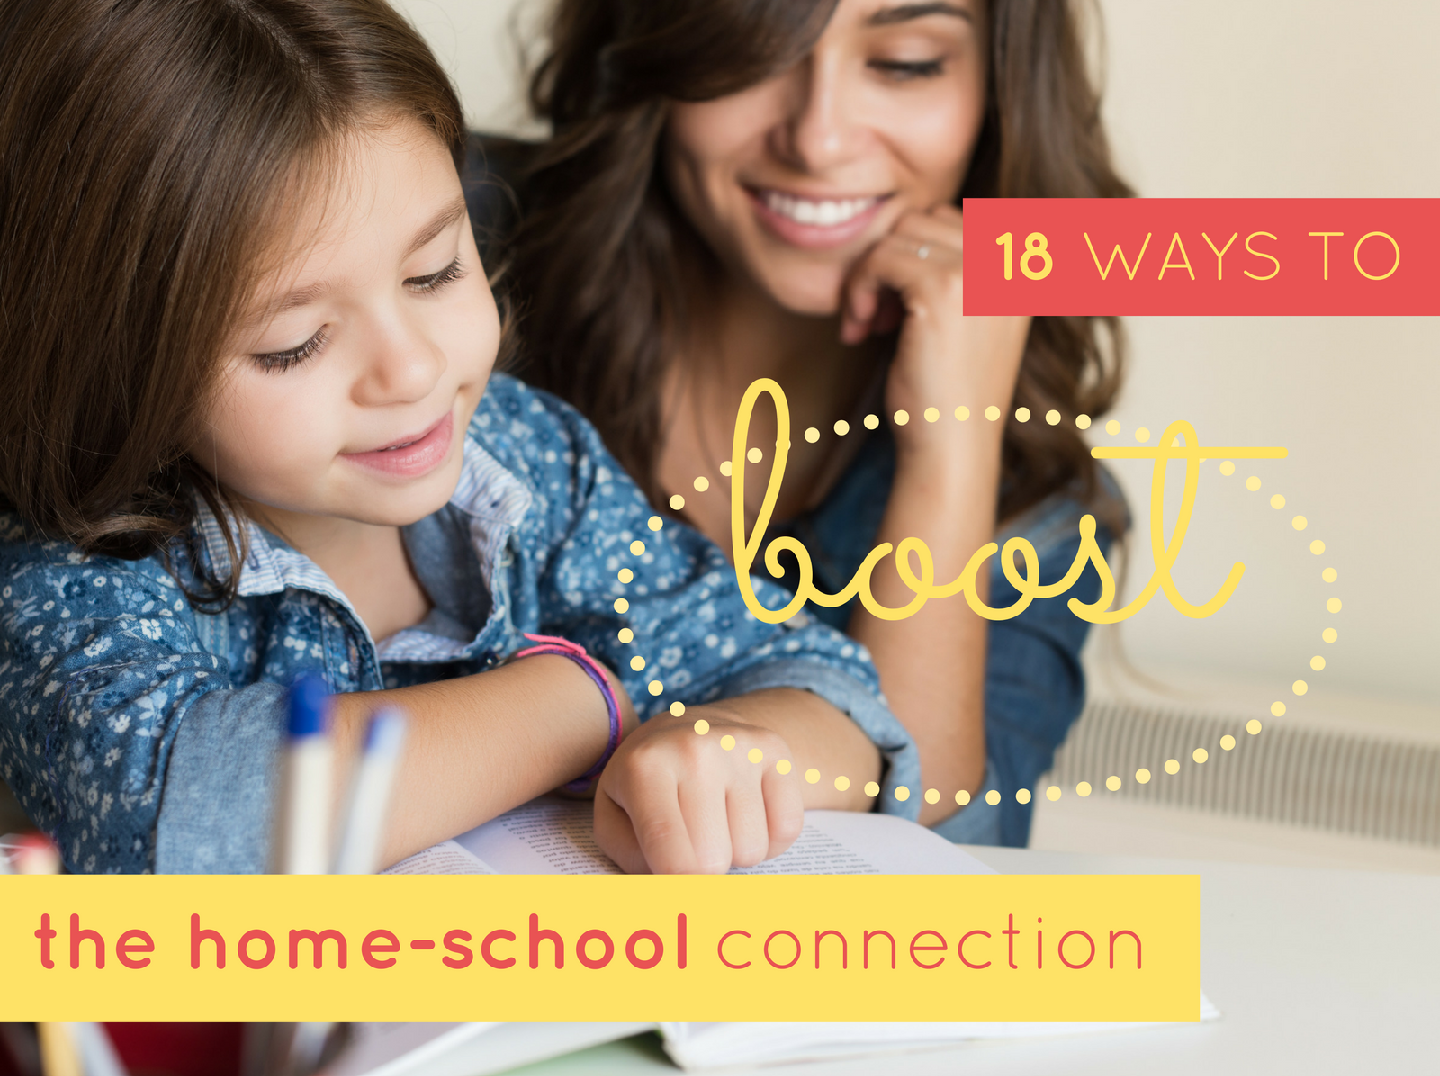 18 ways to boost the home-school connection